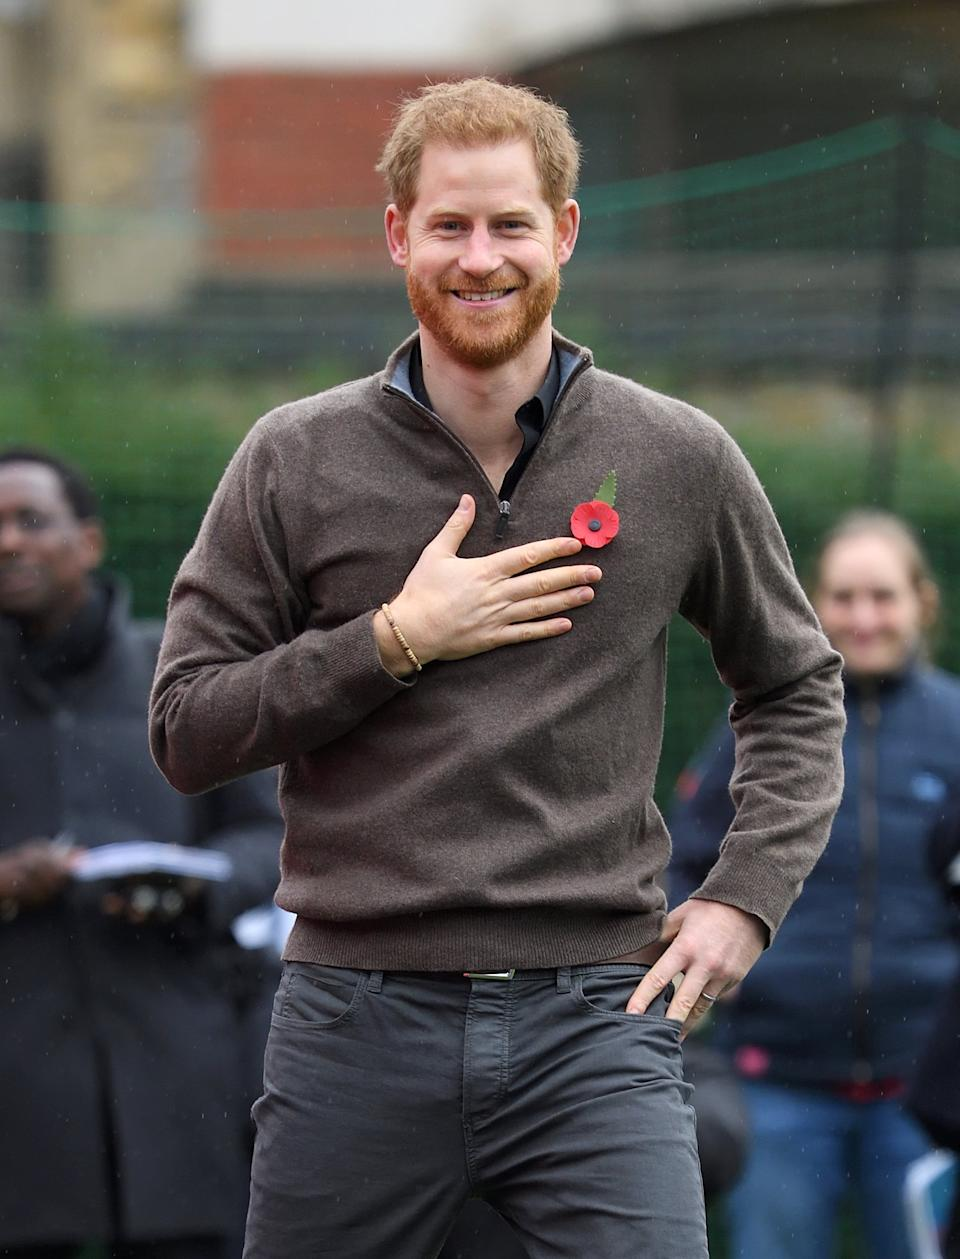 LONDON, ENGLAND - OCTOBER 29: Prince Harry, Duke of Sussex attends the launch of Team UK for the Invictus Games The Hague 2020 at Honourable Artillery Company on October 29, 2019 in London, England. HRH is Patron of the Invictus Games Foundation. (Photo by Karwai Tang/WireImage)